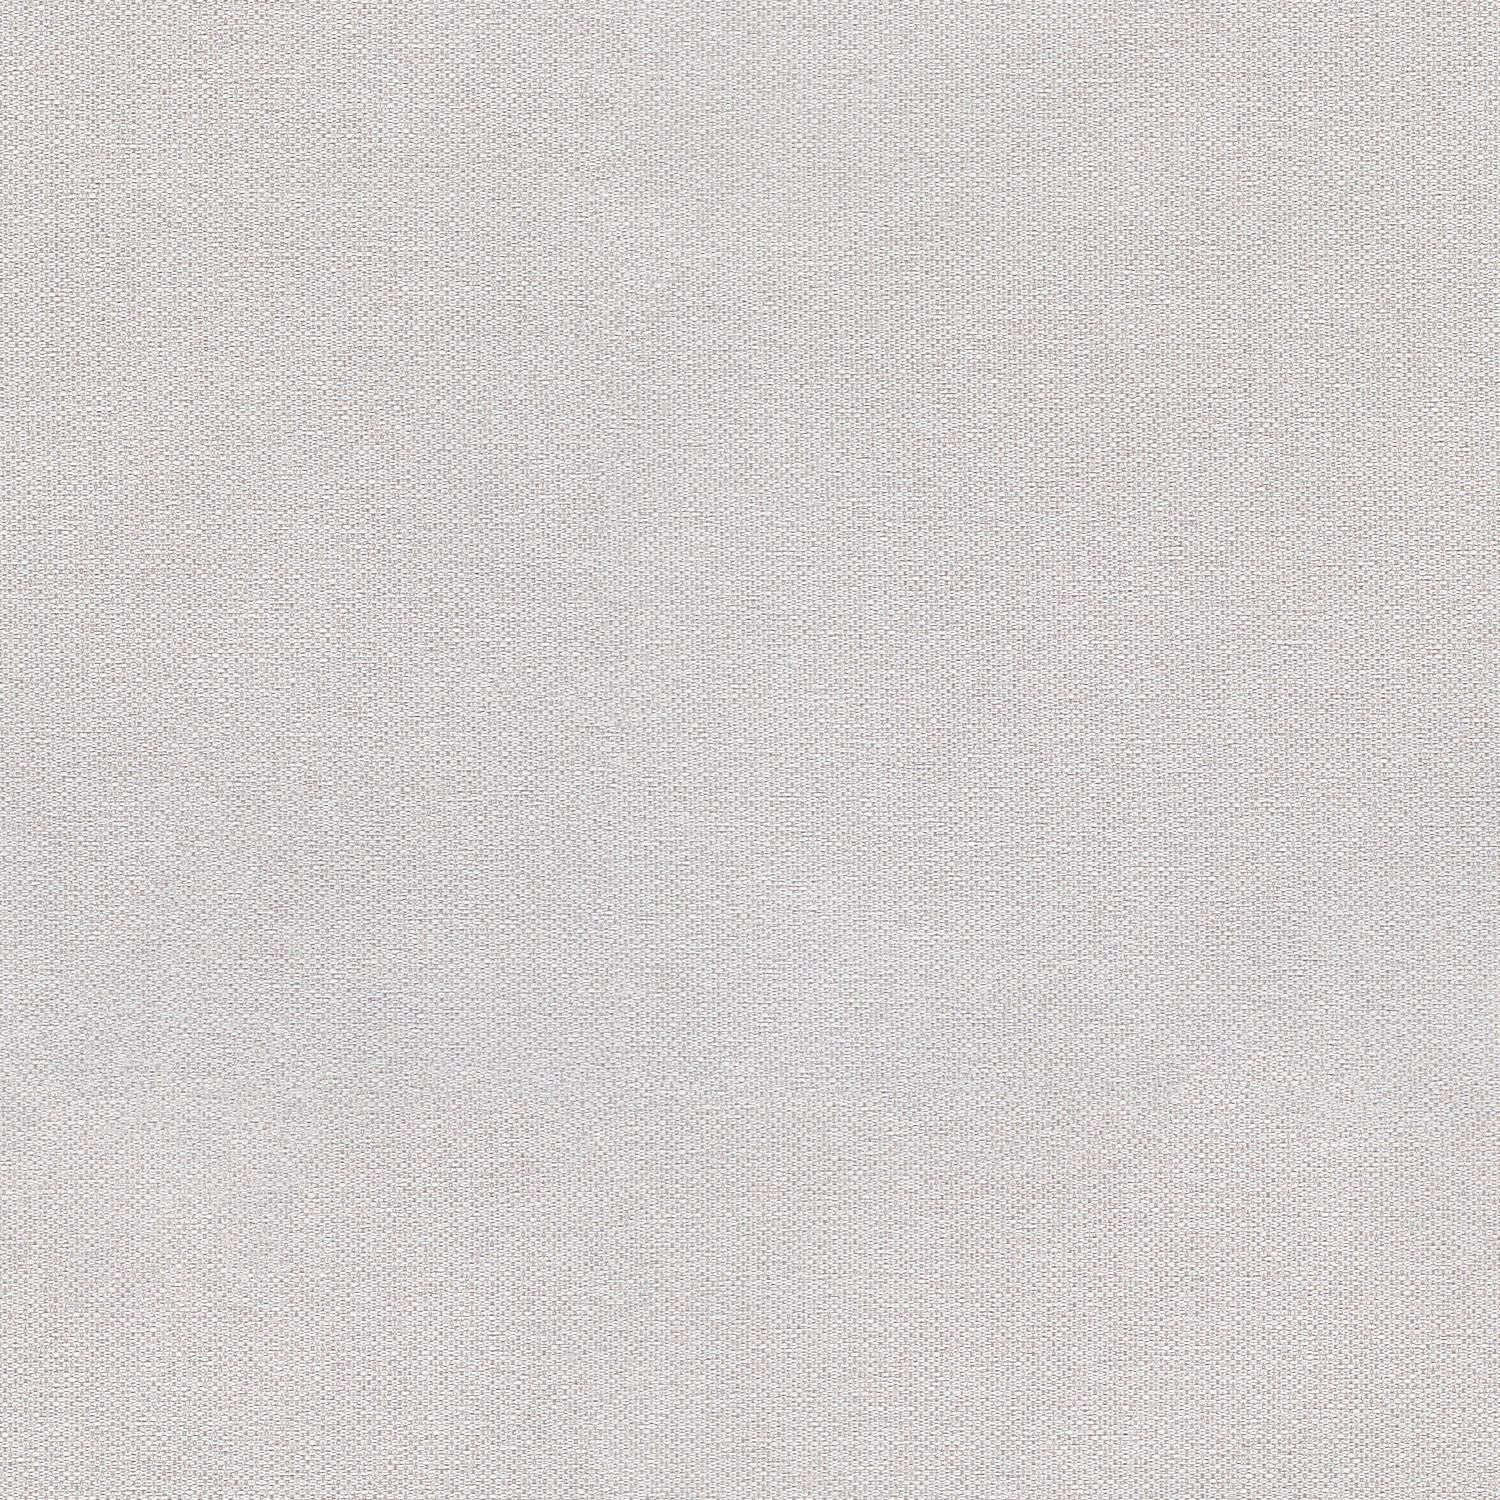 Fleck Forge - White Hot - 7016 - 01 - Half Yard Tileable Swatches